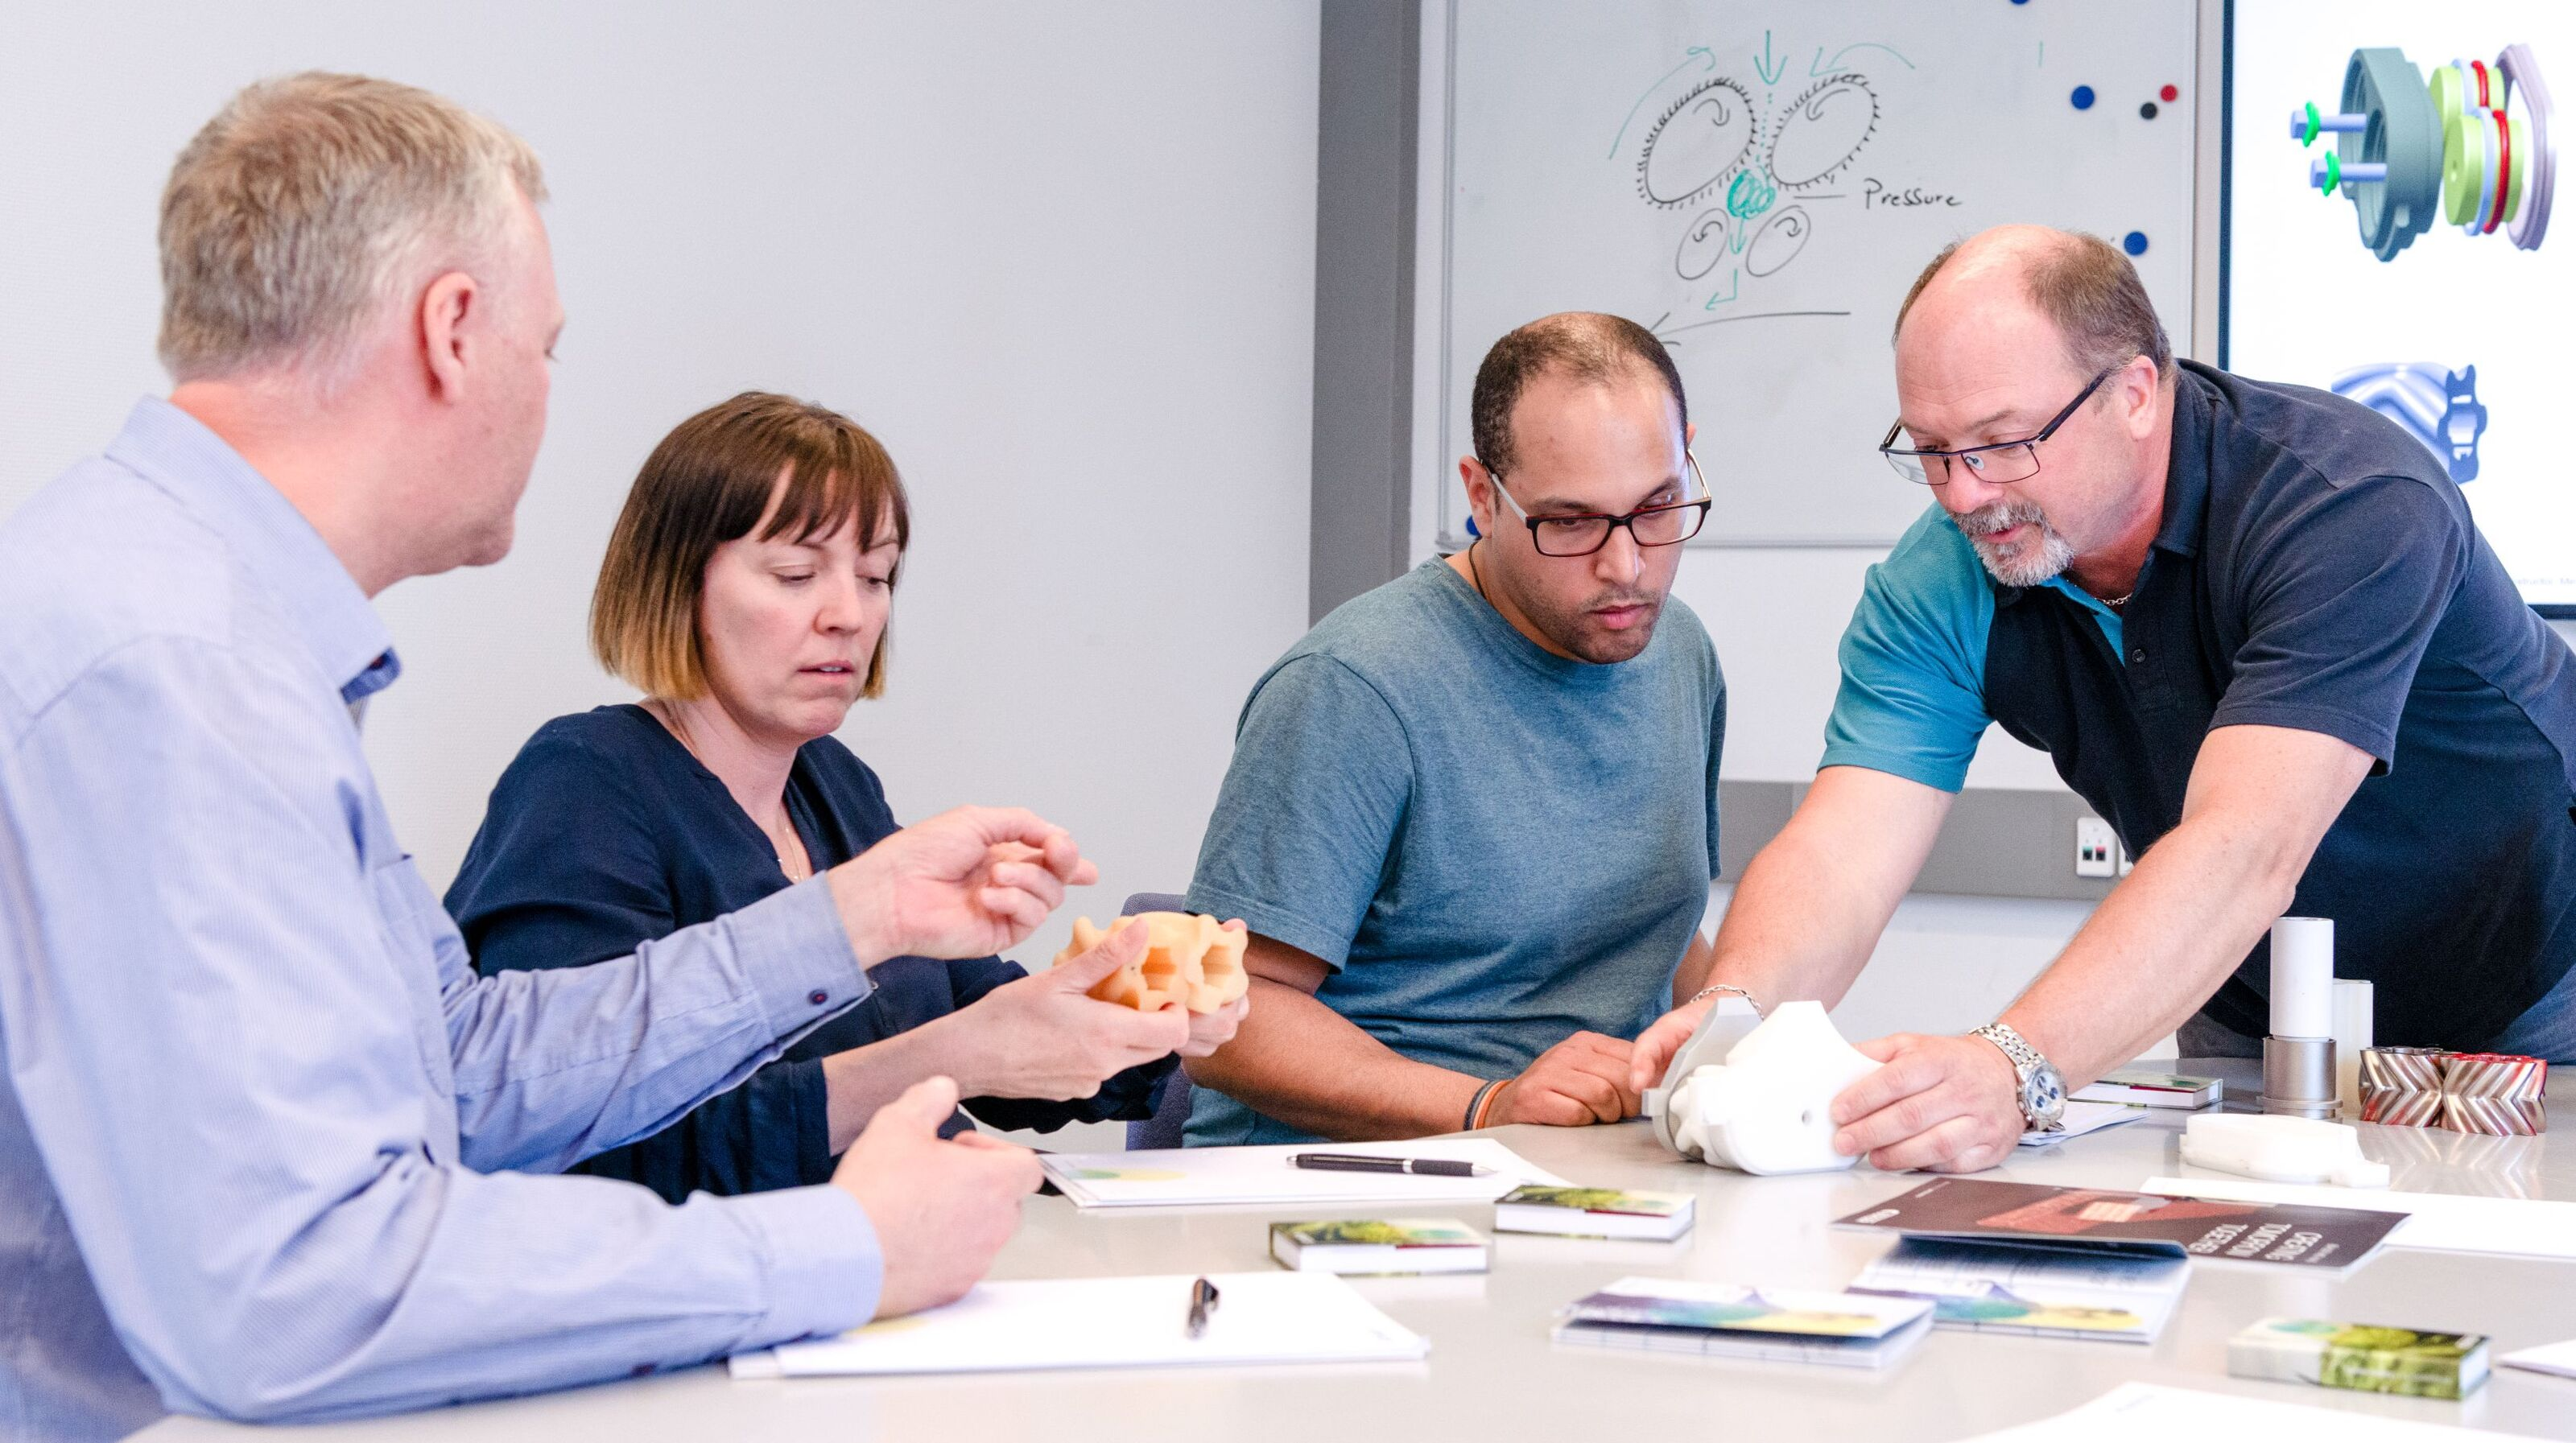 Bühler expert training customers in a well-equipped classroom.